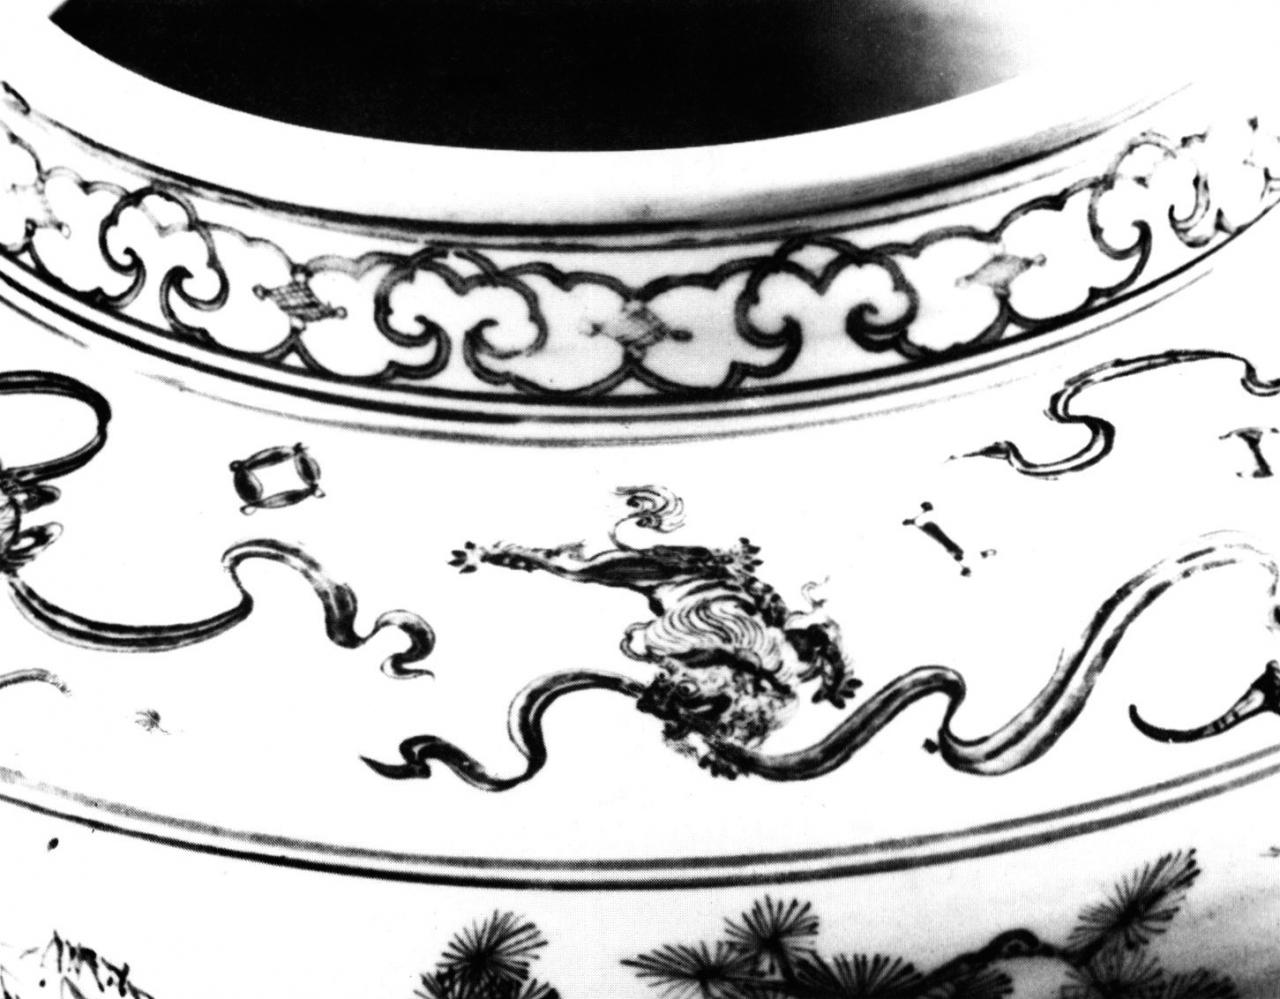 The date of a rare blue and white wine jar in the chinese the motif of the mythical animal suan nithe mythical animal suan ni is said to be a lion or a wild horse which could run for 500 li chinese miles reviewsmspy